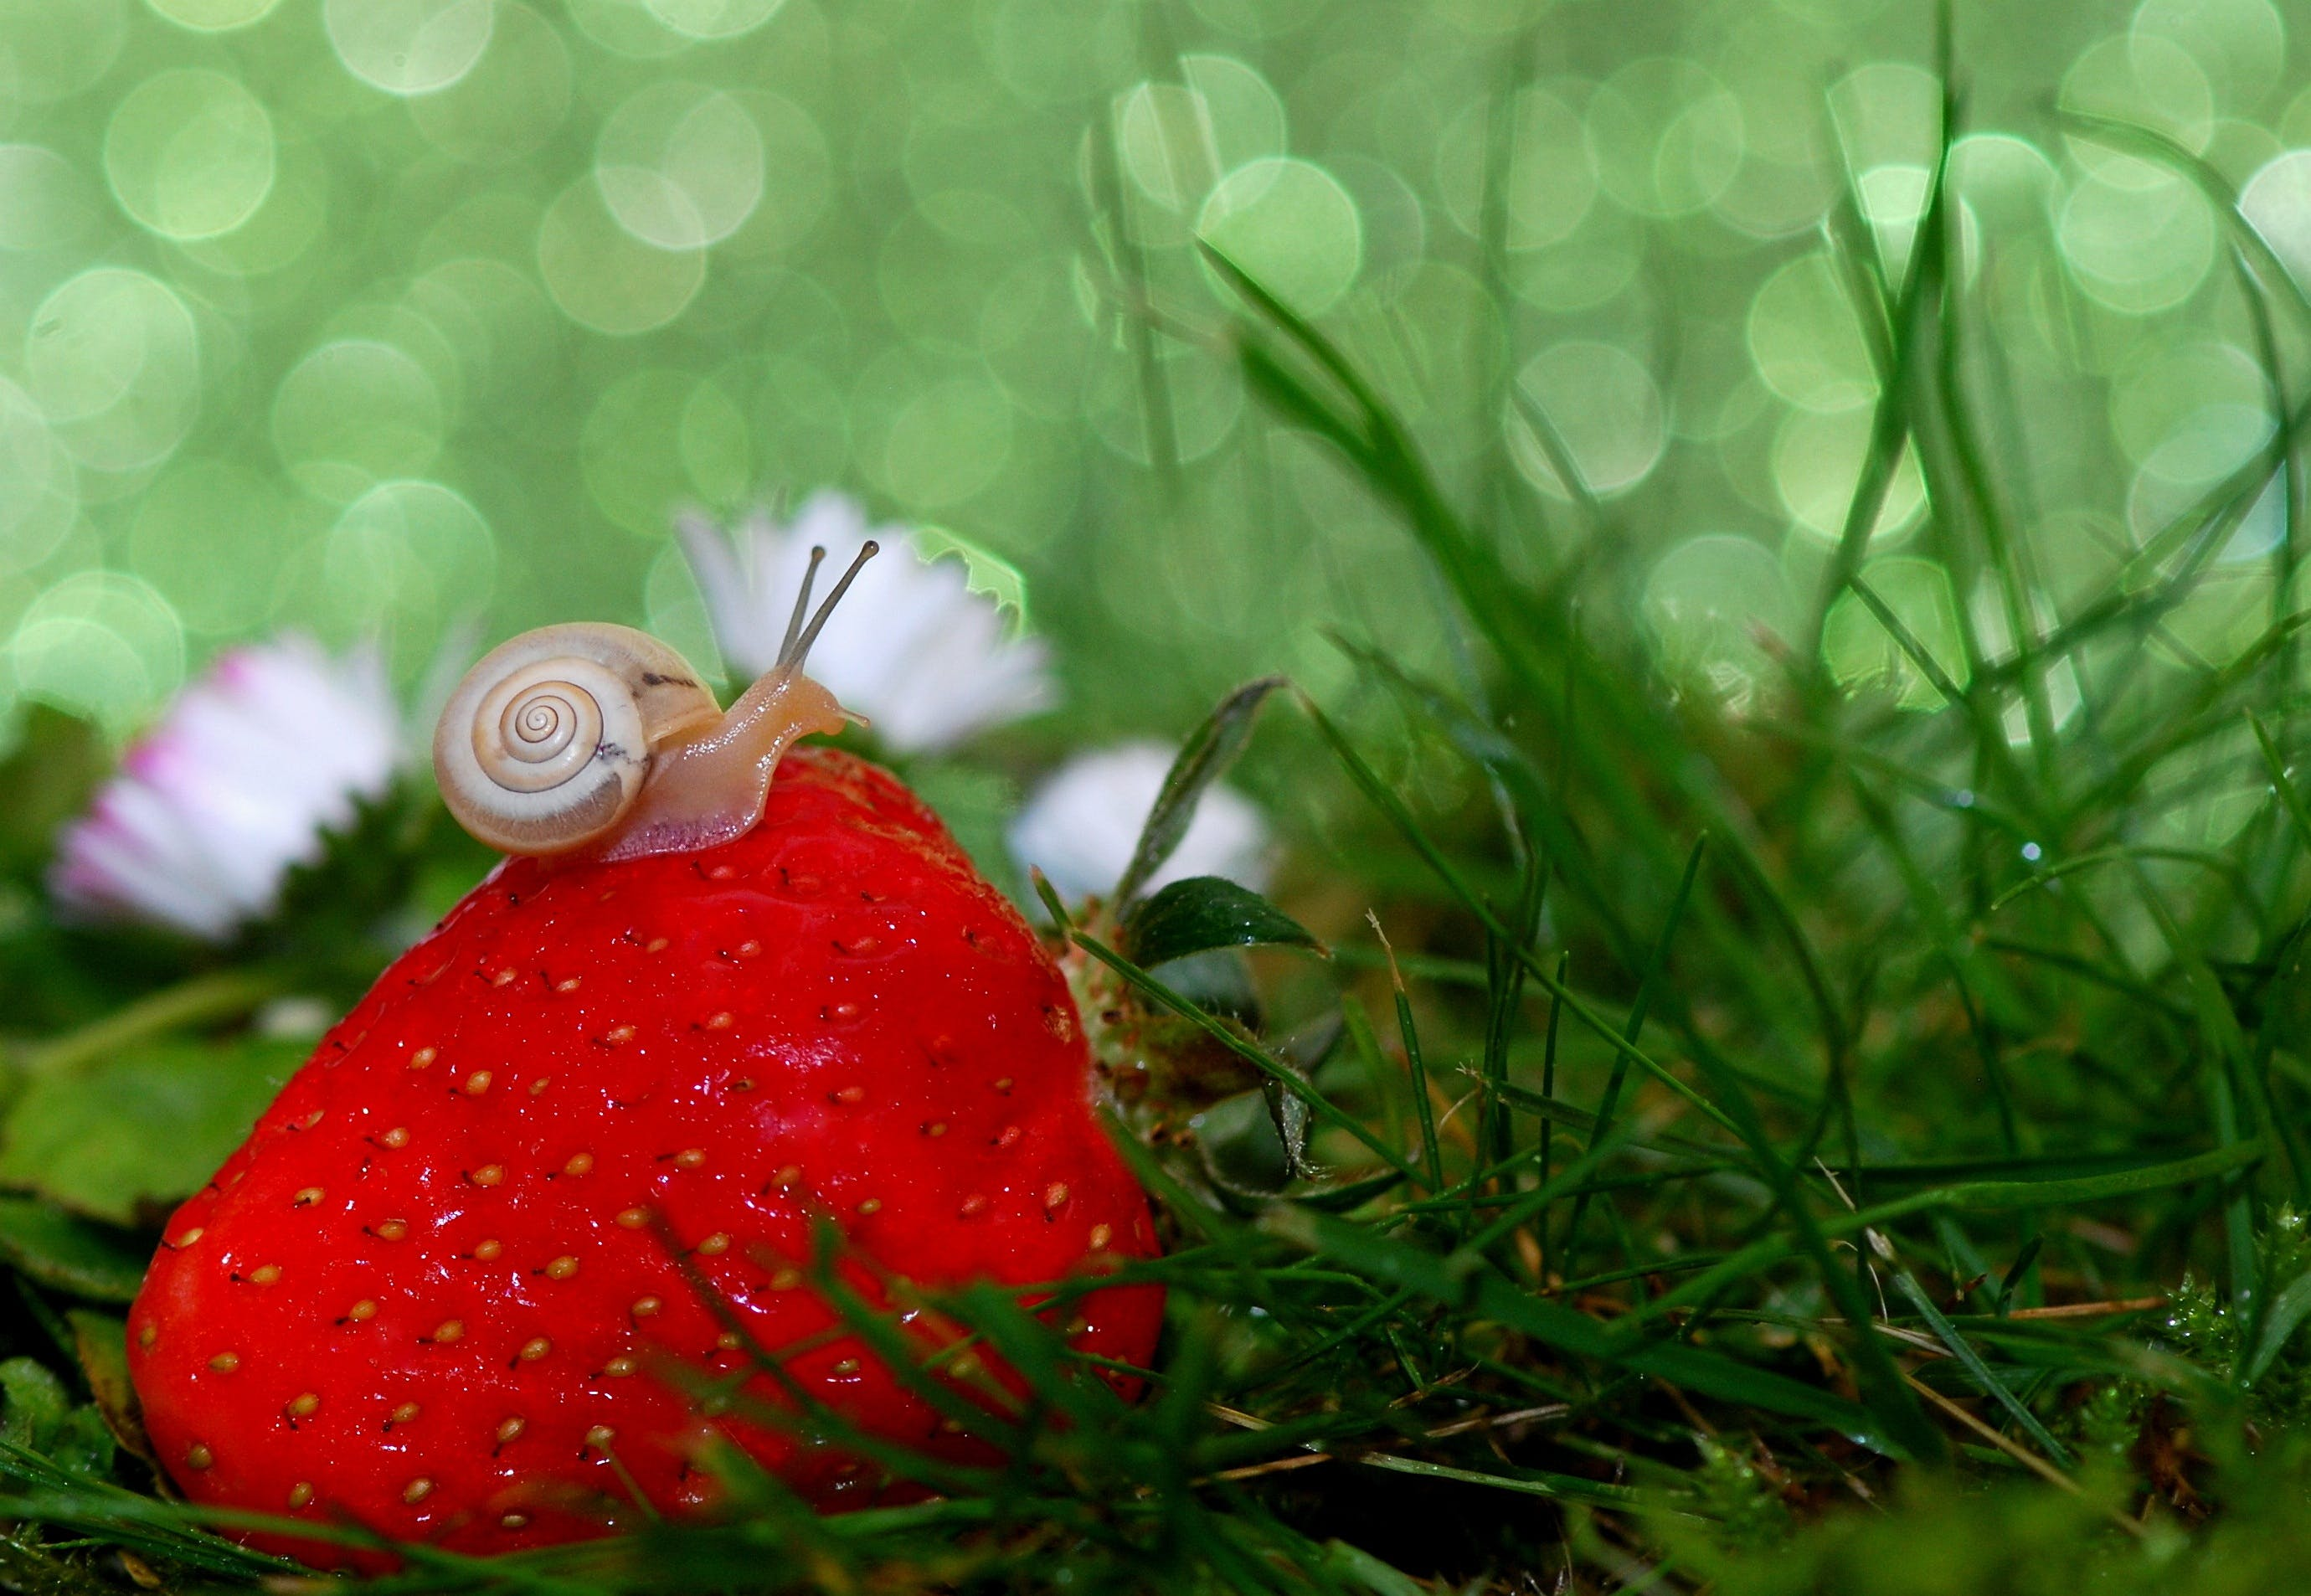 Snail on Top of Strawberry